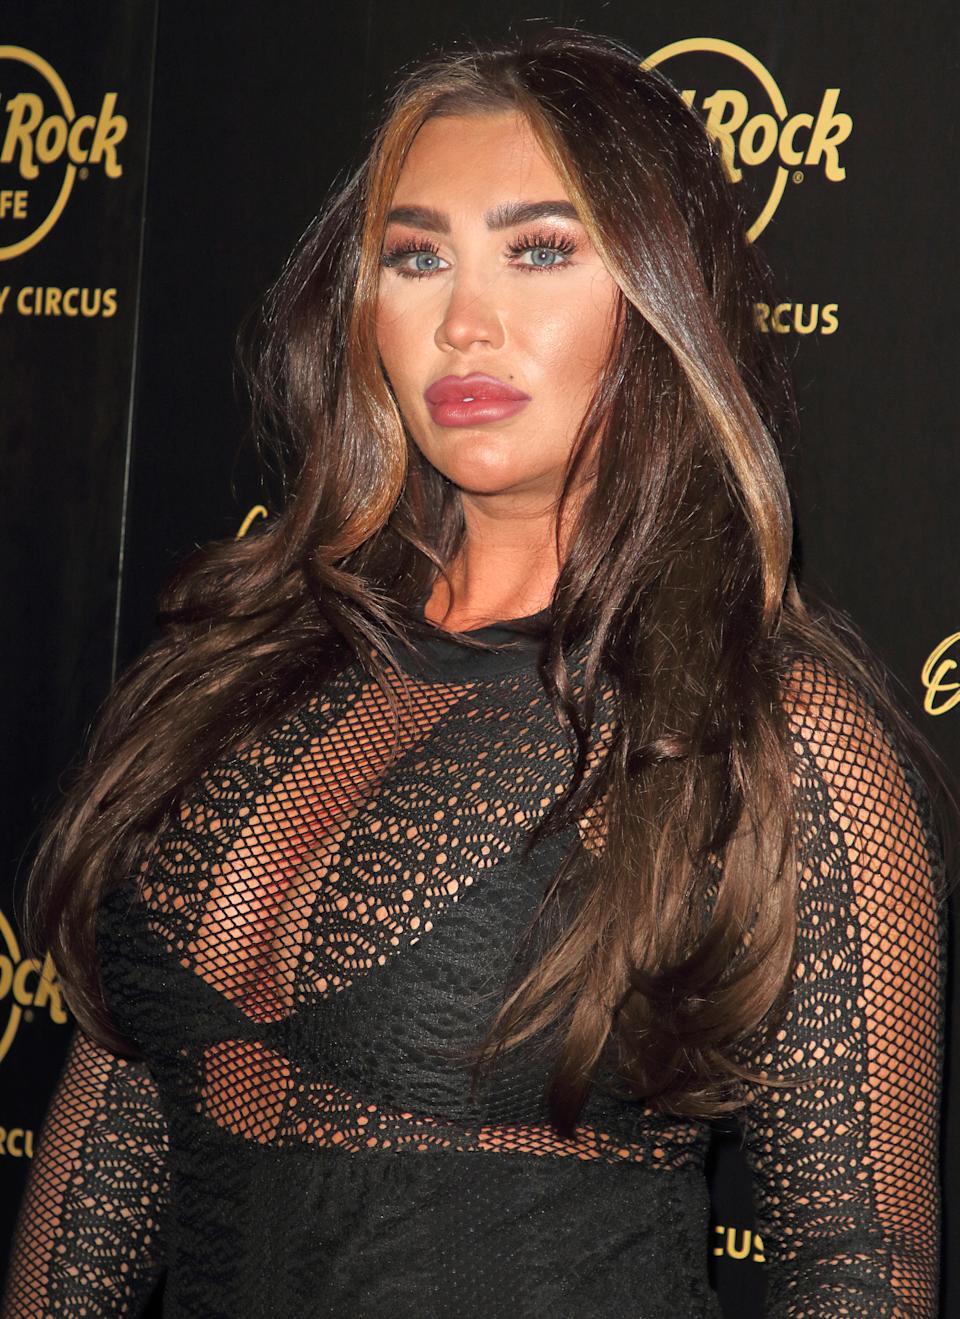 LONDON, UNITED KINGDOM - 2019/09/12: Lauren Goodger on the red carpet at the Hard Rock Cafe Piccadilly Circus Launch Party in London. (Photo by Keith Mayhew/SOPA Images/LightRocket via Getty Images)